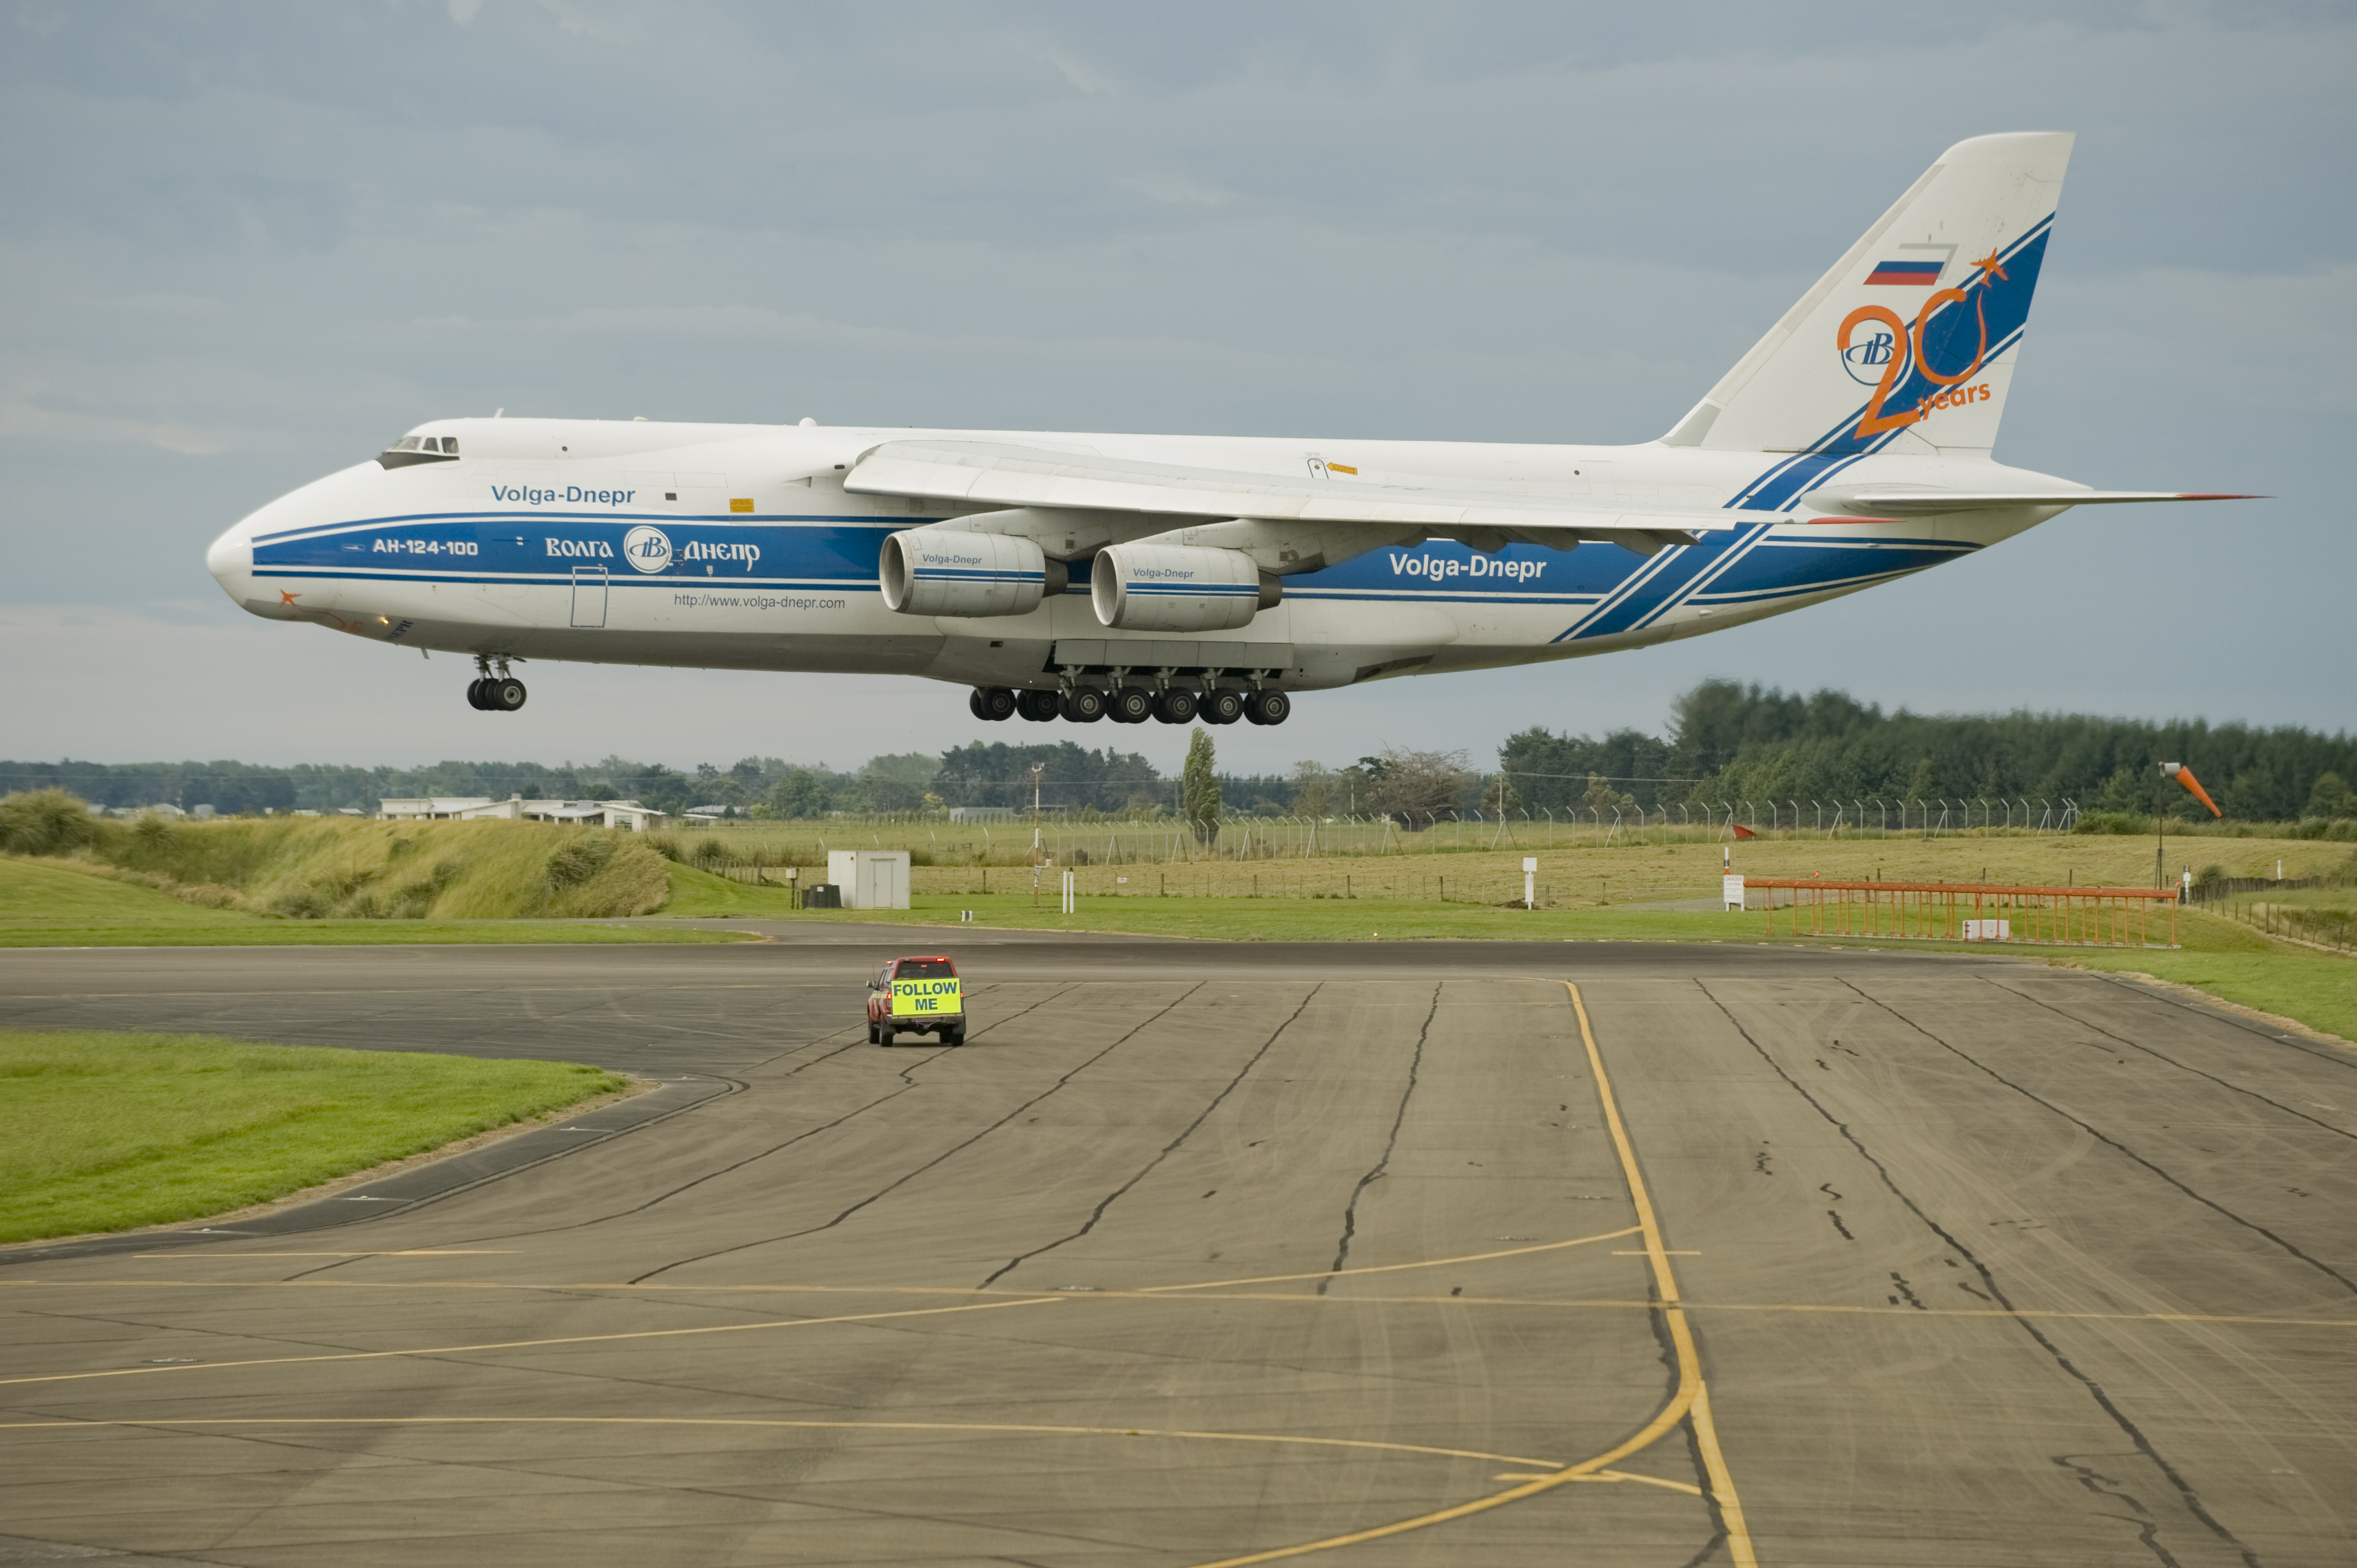 Antonov_AN124-100_landing_at_RNZAF_Base_Ohakea